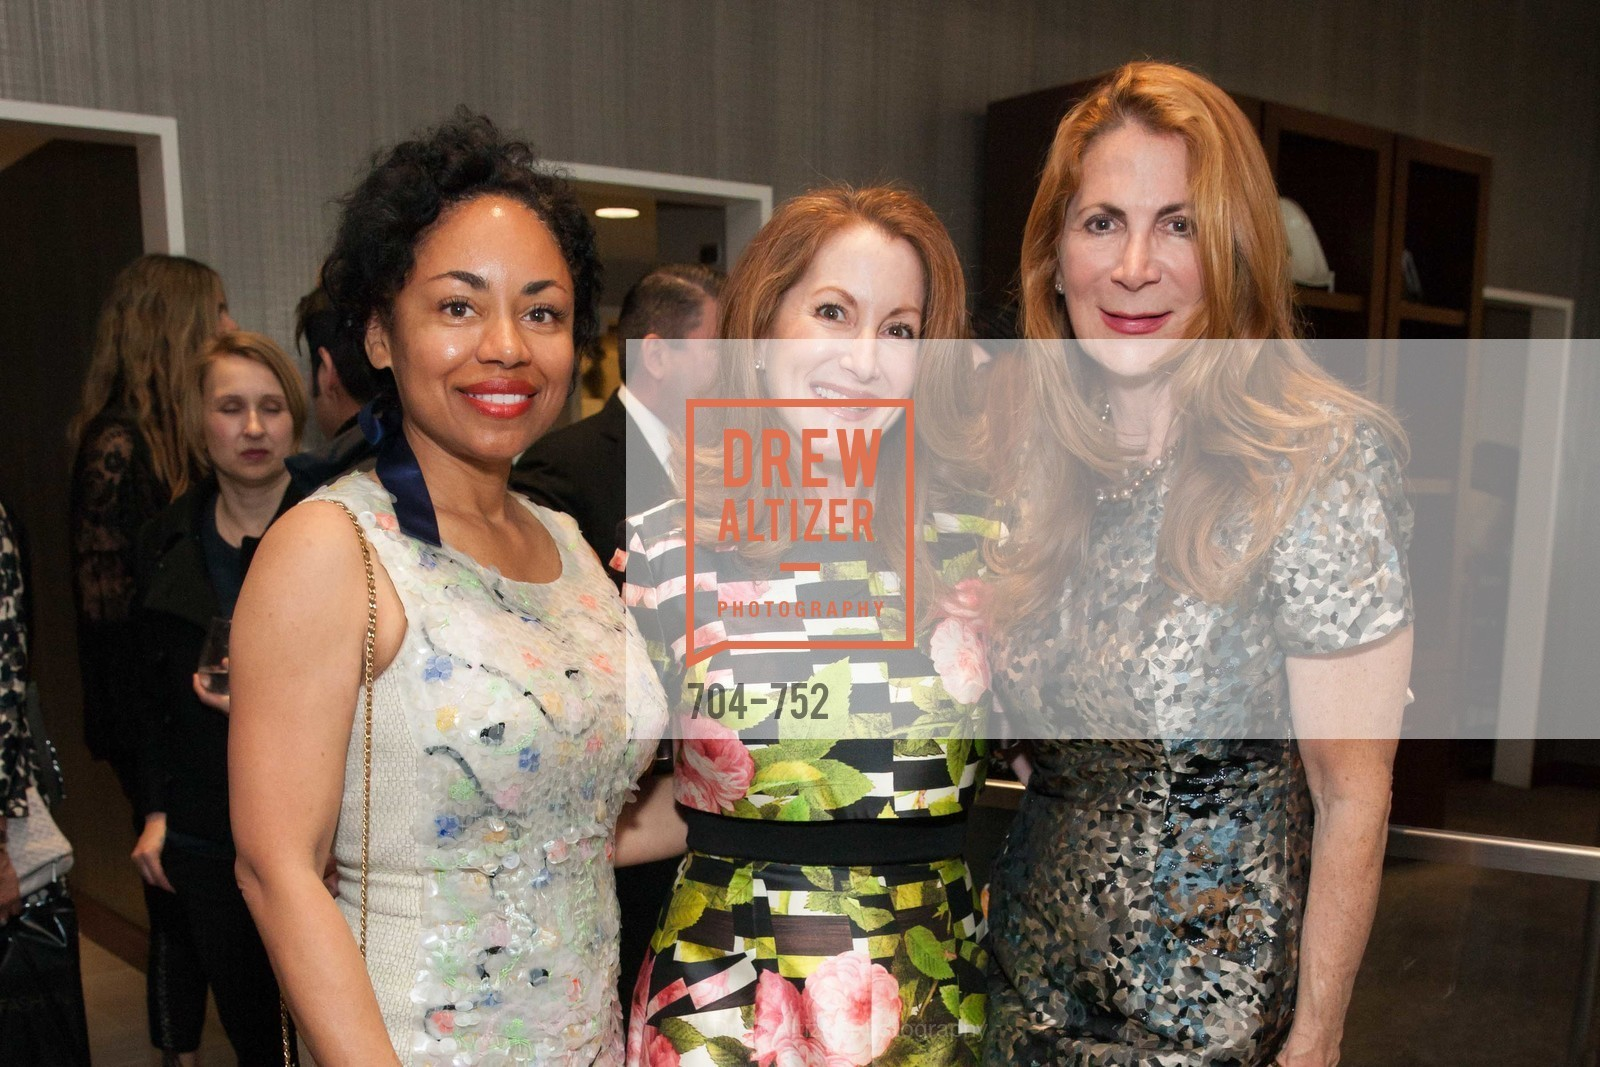 Paula Schultz, Ave Seltsam, Patricia Ferrin Loucks, Electric Fashion Book Signing with Christine Suppes & Ken Downing at THE ROTUNDA, NEIMAN MARCUS, Neiman Marcus, Rotunda, May 27th, 2015,Drew Altizer, Drew Altizer Photography, full-service agency, private events, San Francisco photographer, photographer california